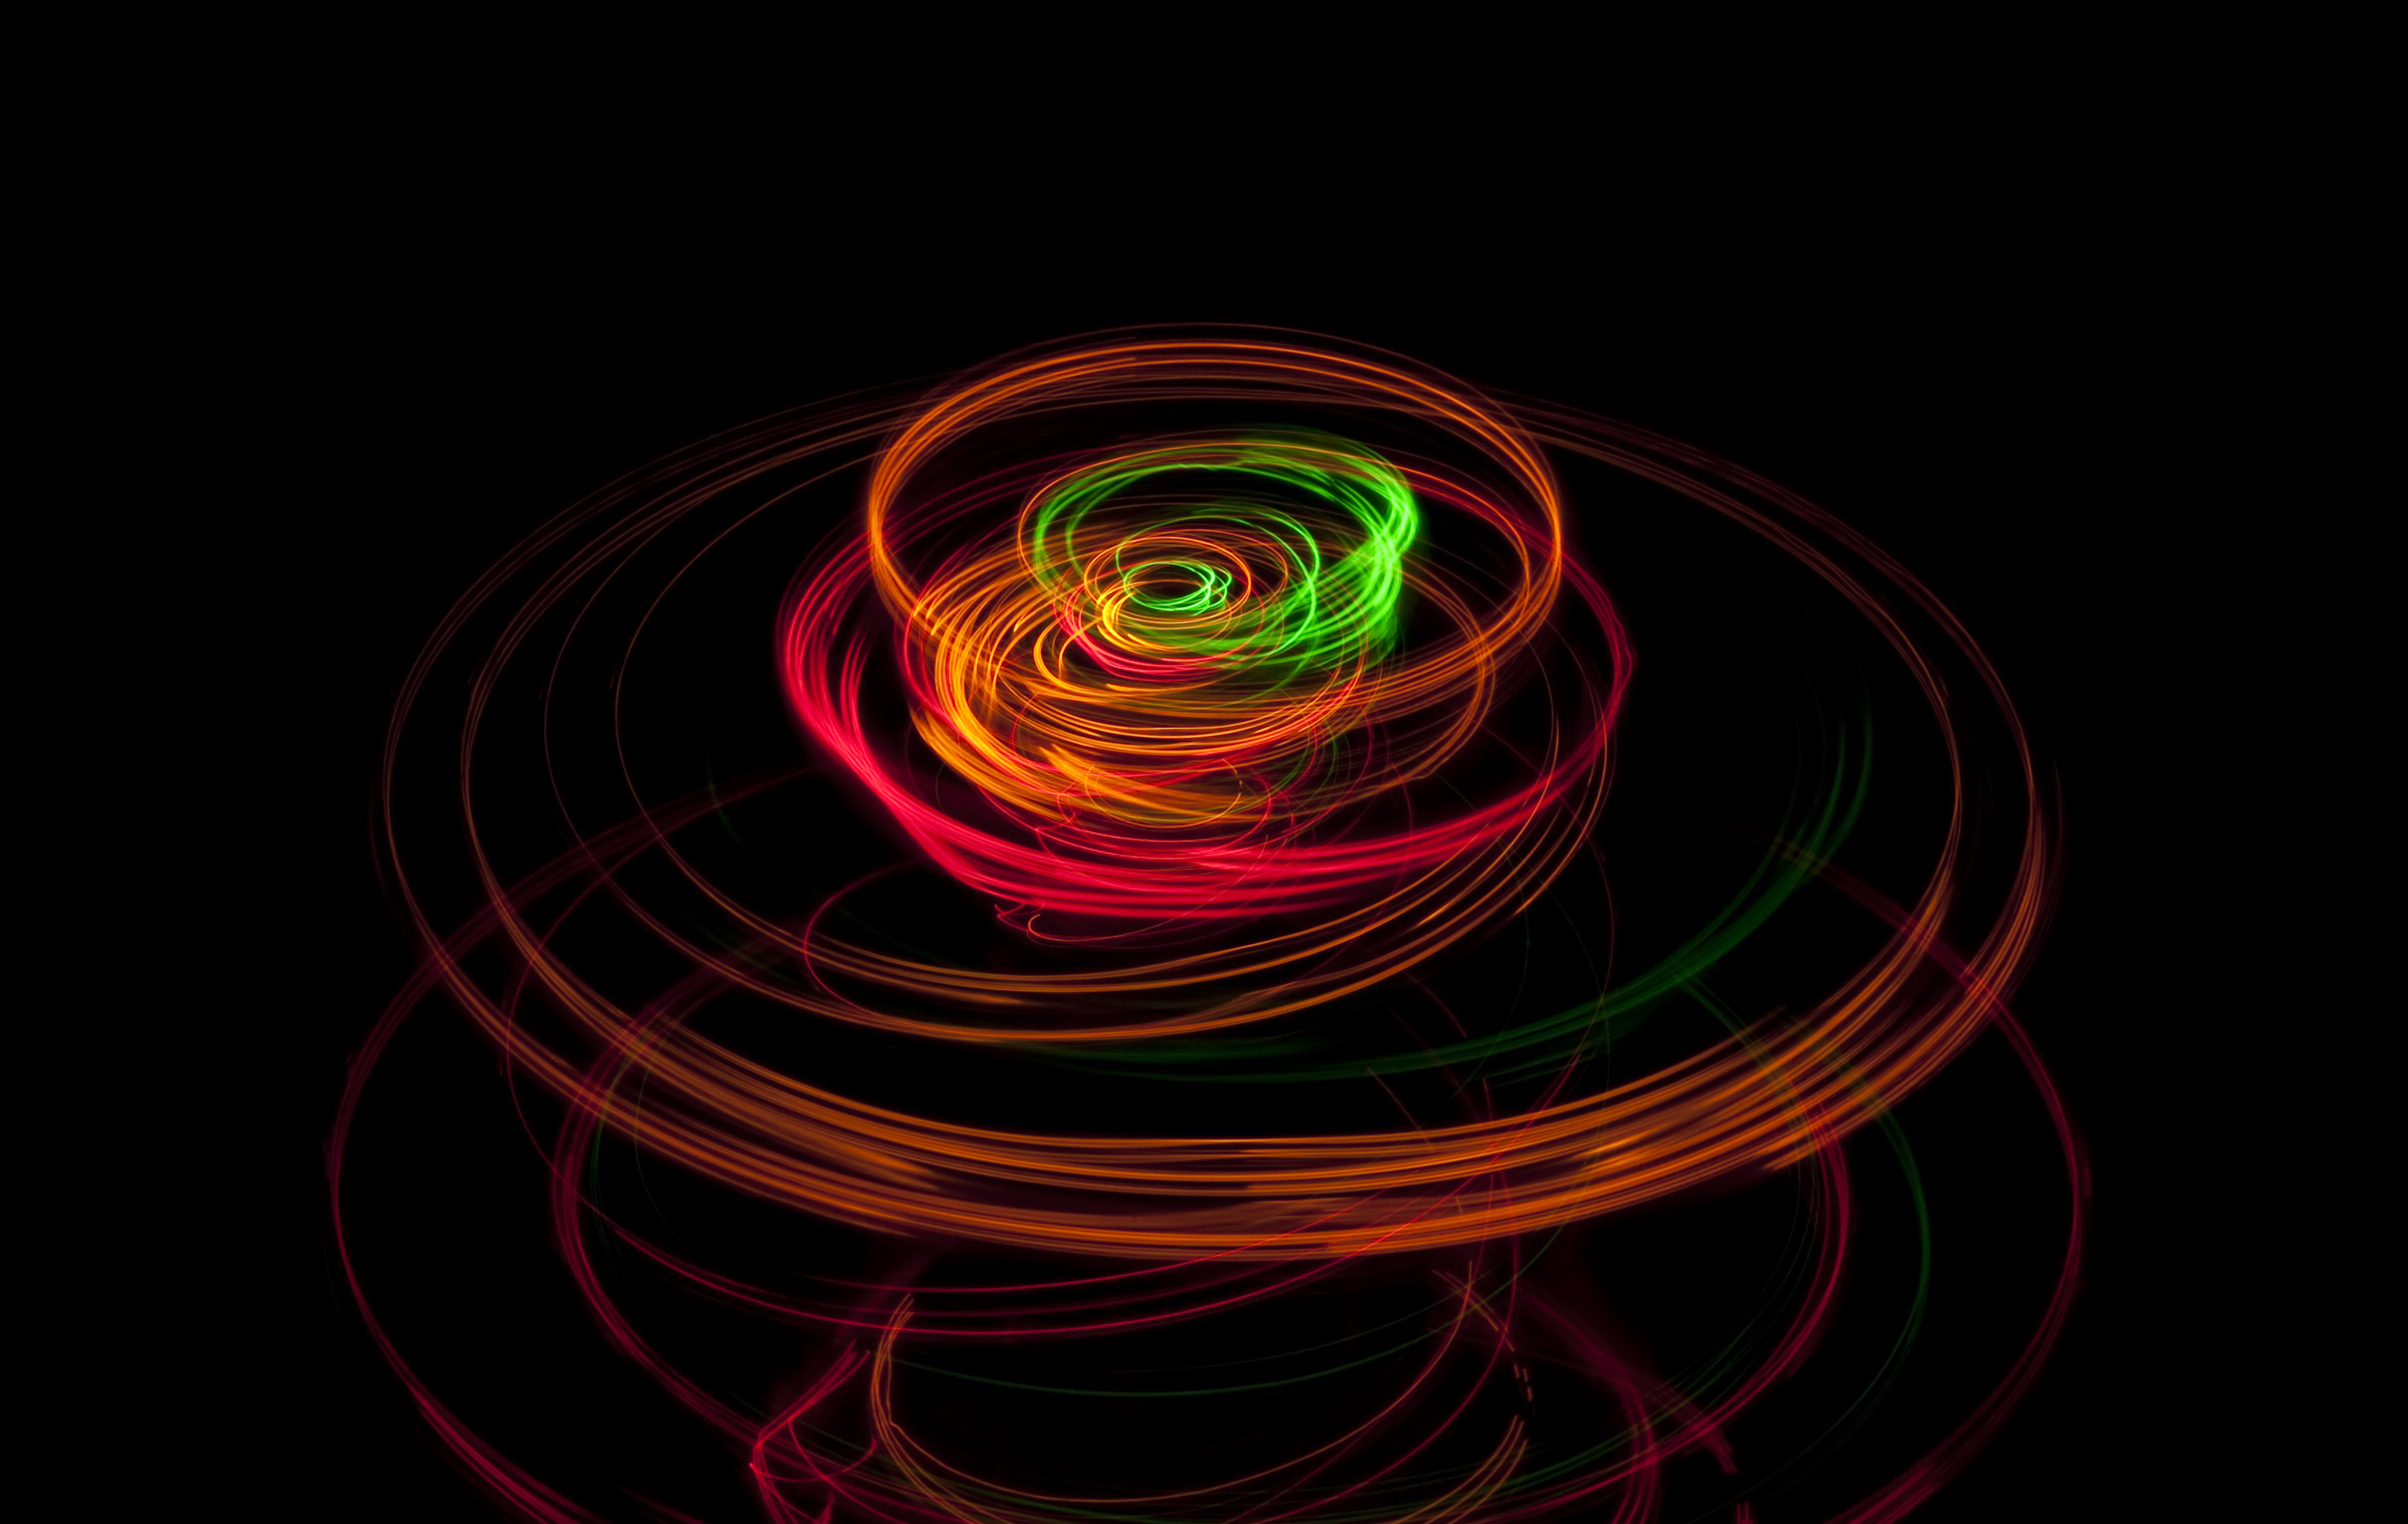 spinning light motion | Free backgrounds and textures | Cr103.com